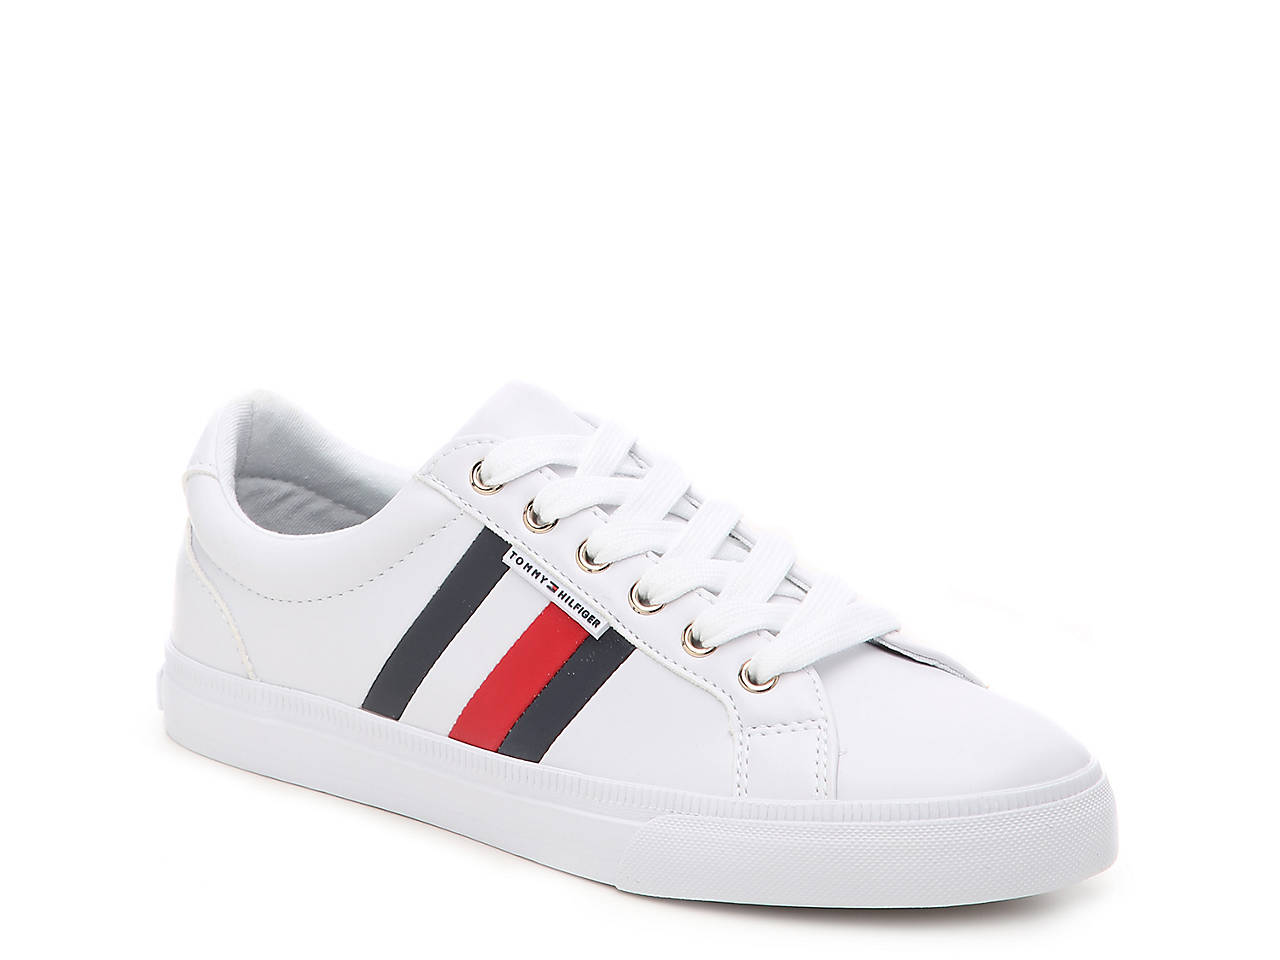 45d10bc4e Tommy Hilfiger Lightz Sneaker Women s Shoes